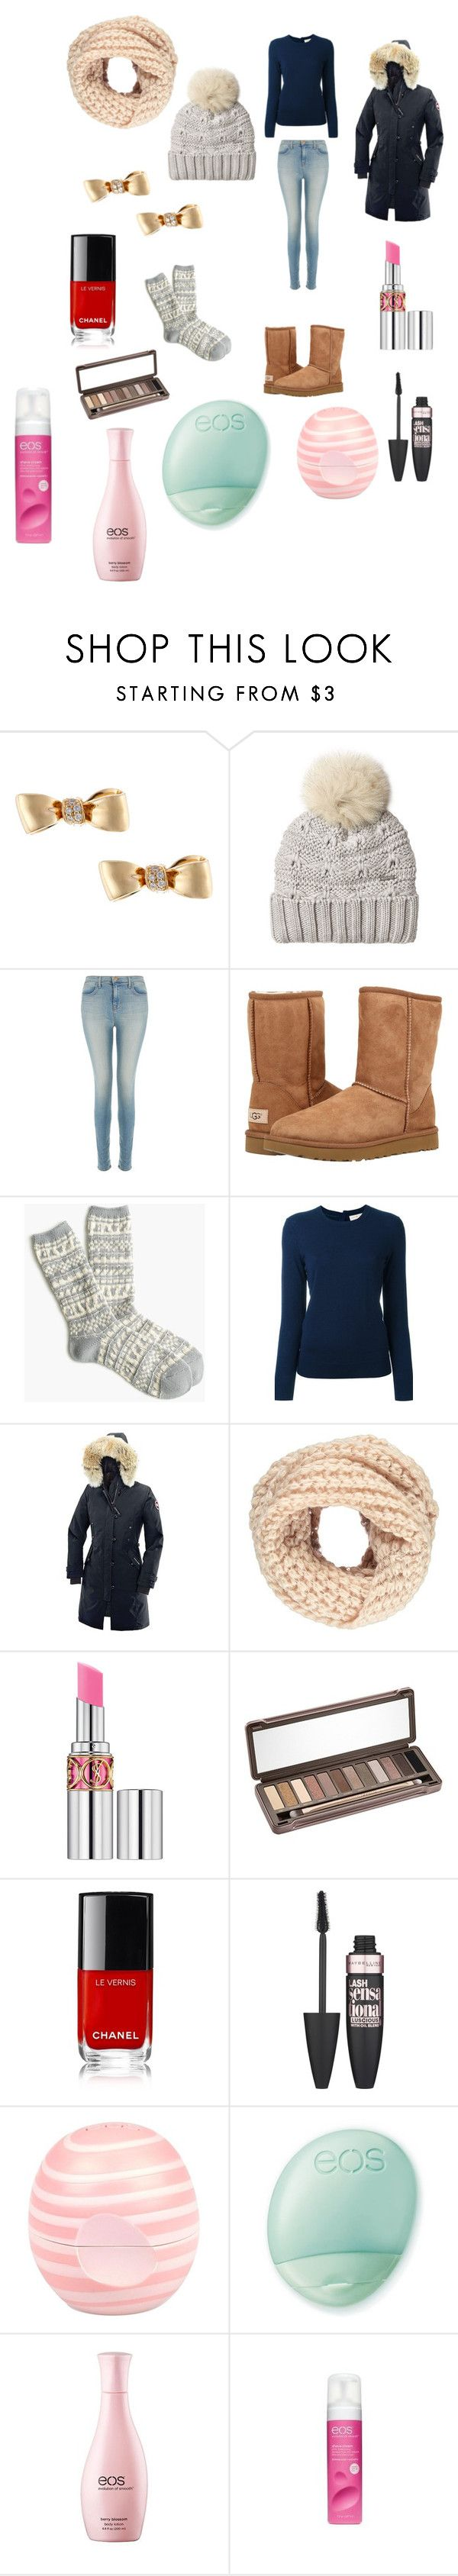 """Untitled #85"" by ecoworld ❤ liked on Polyvore featuring Mimi So, Woolrich, J Brand, UGG Australia, J.Crew, Tory Burch, Canada Goose, Forever 21, Yves Saint Laurent and Urban Decay"